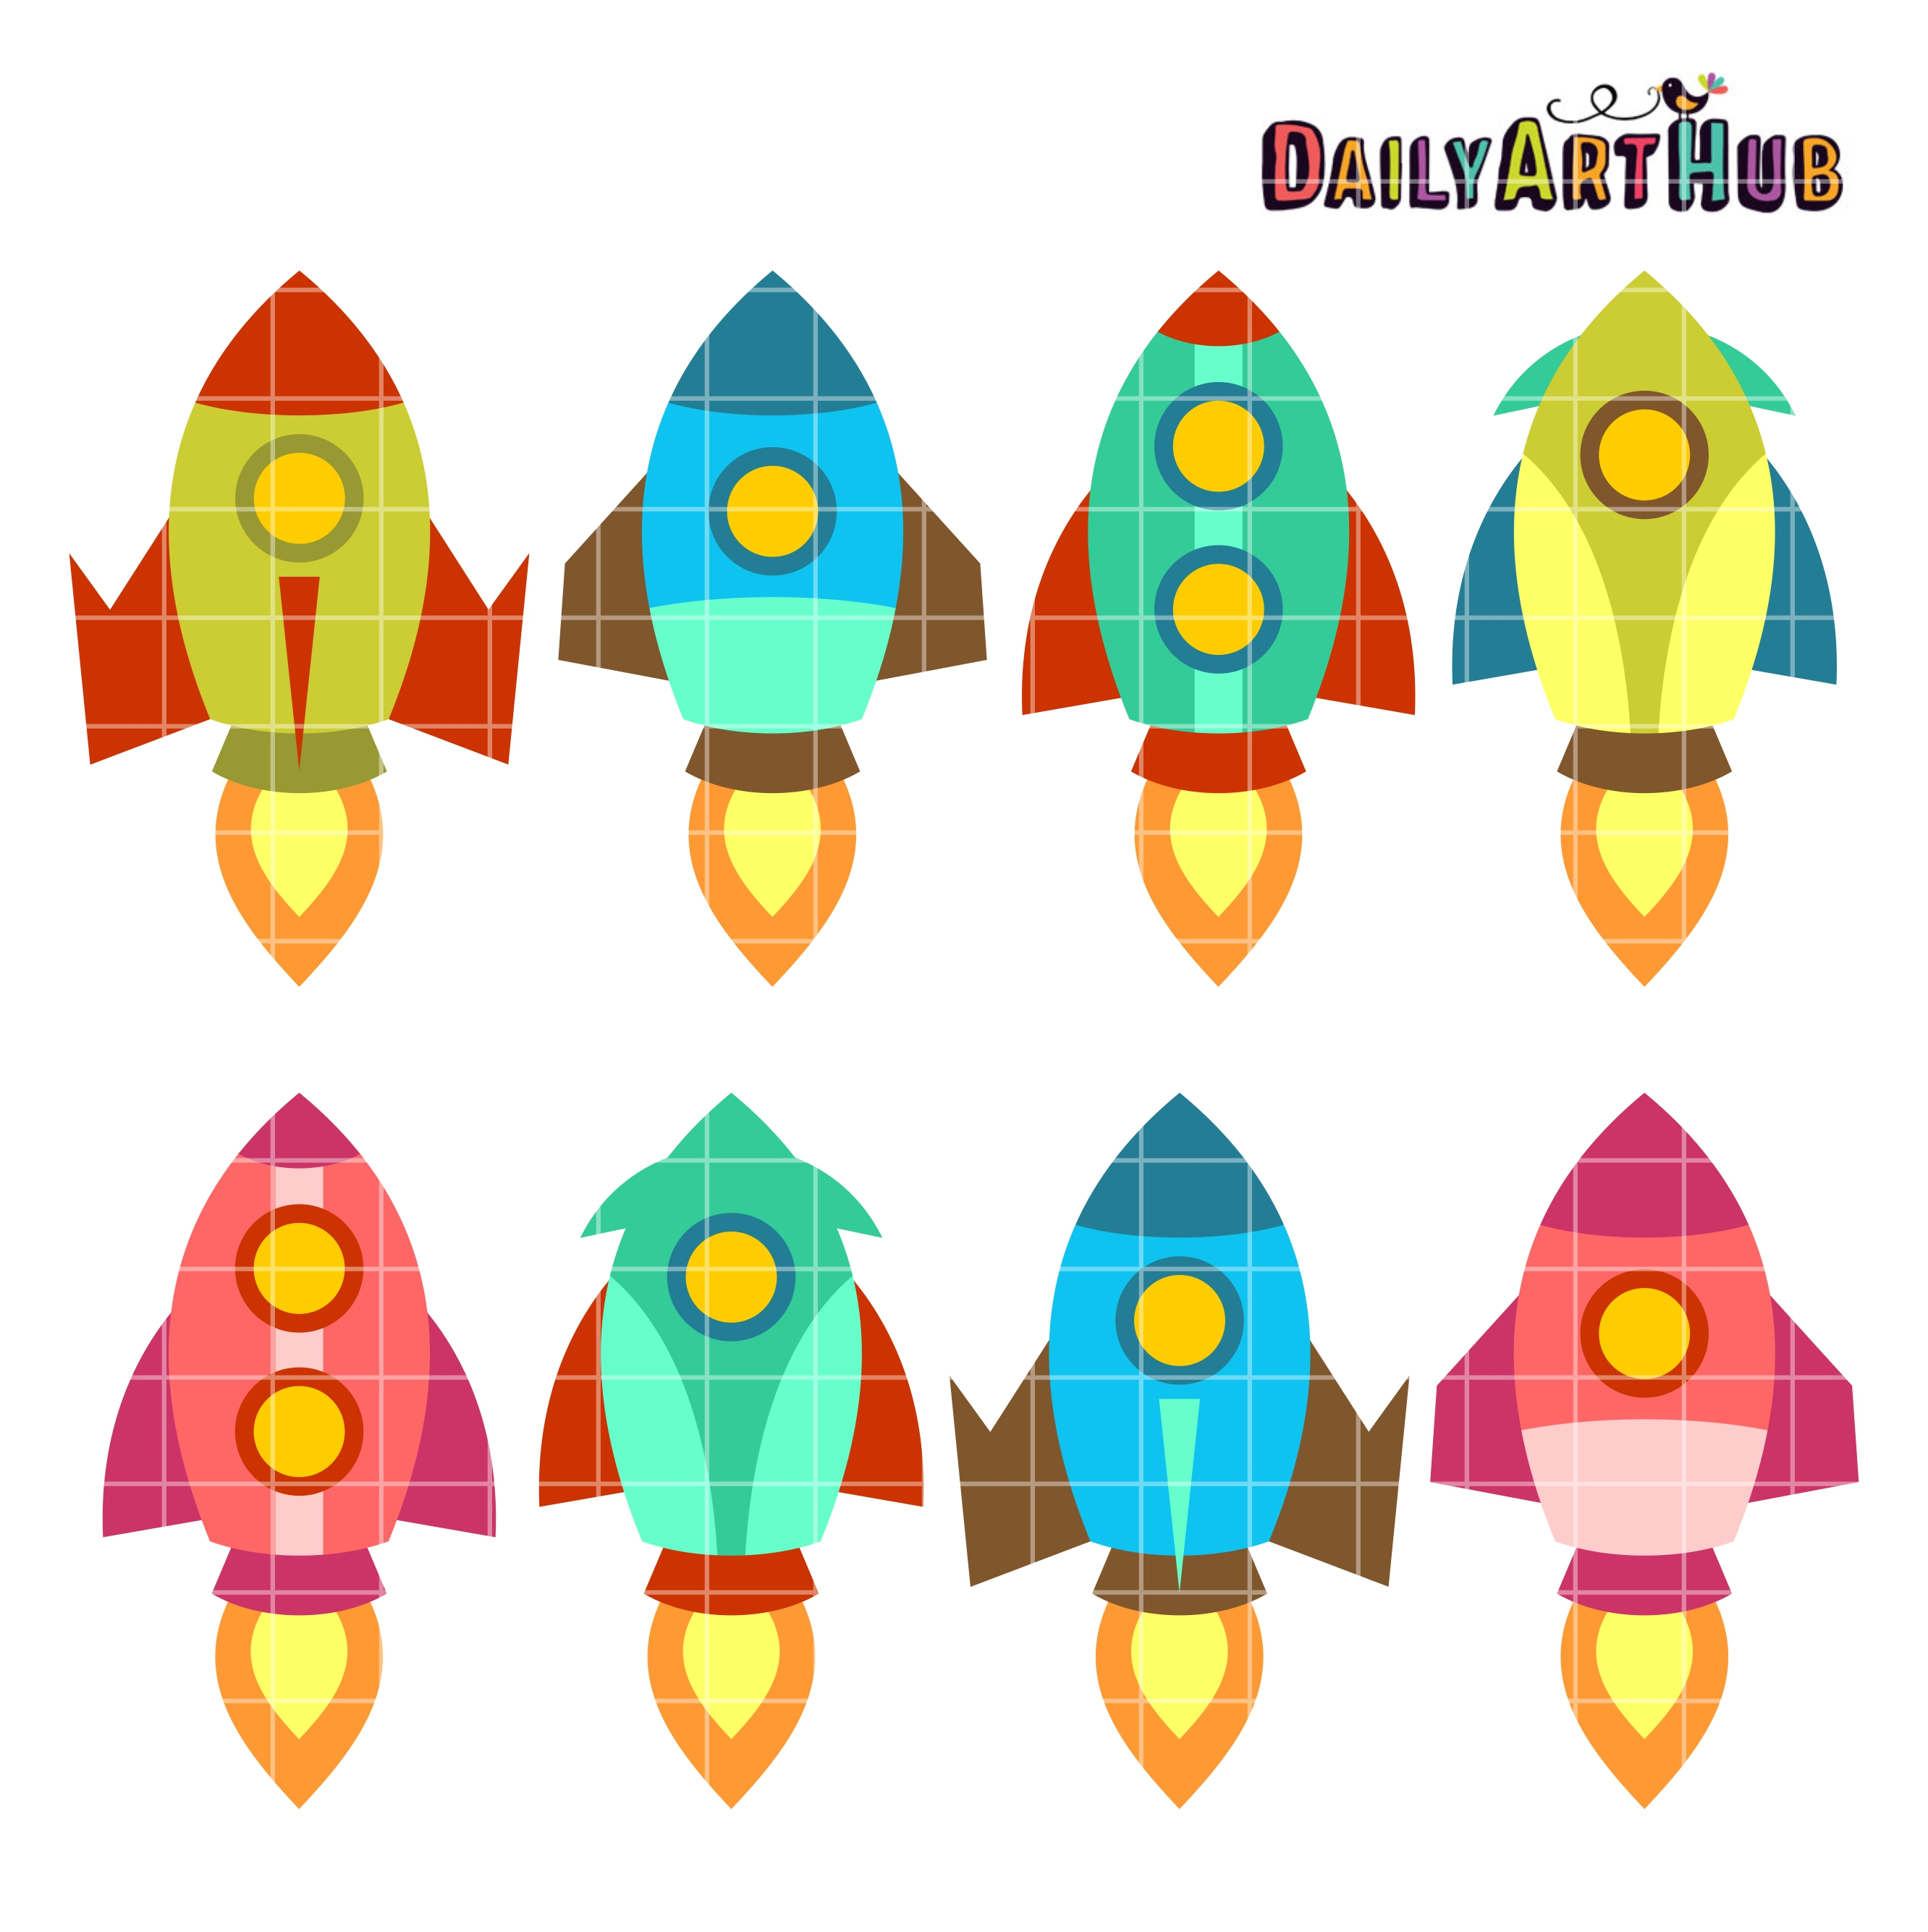 old school rocket ships clip art set daily art hub free clip art rh dailyarthub com school clipart free black and white school clipart free black and white